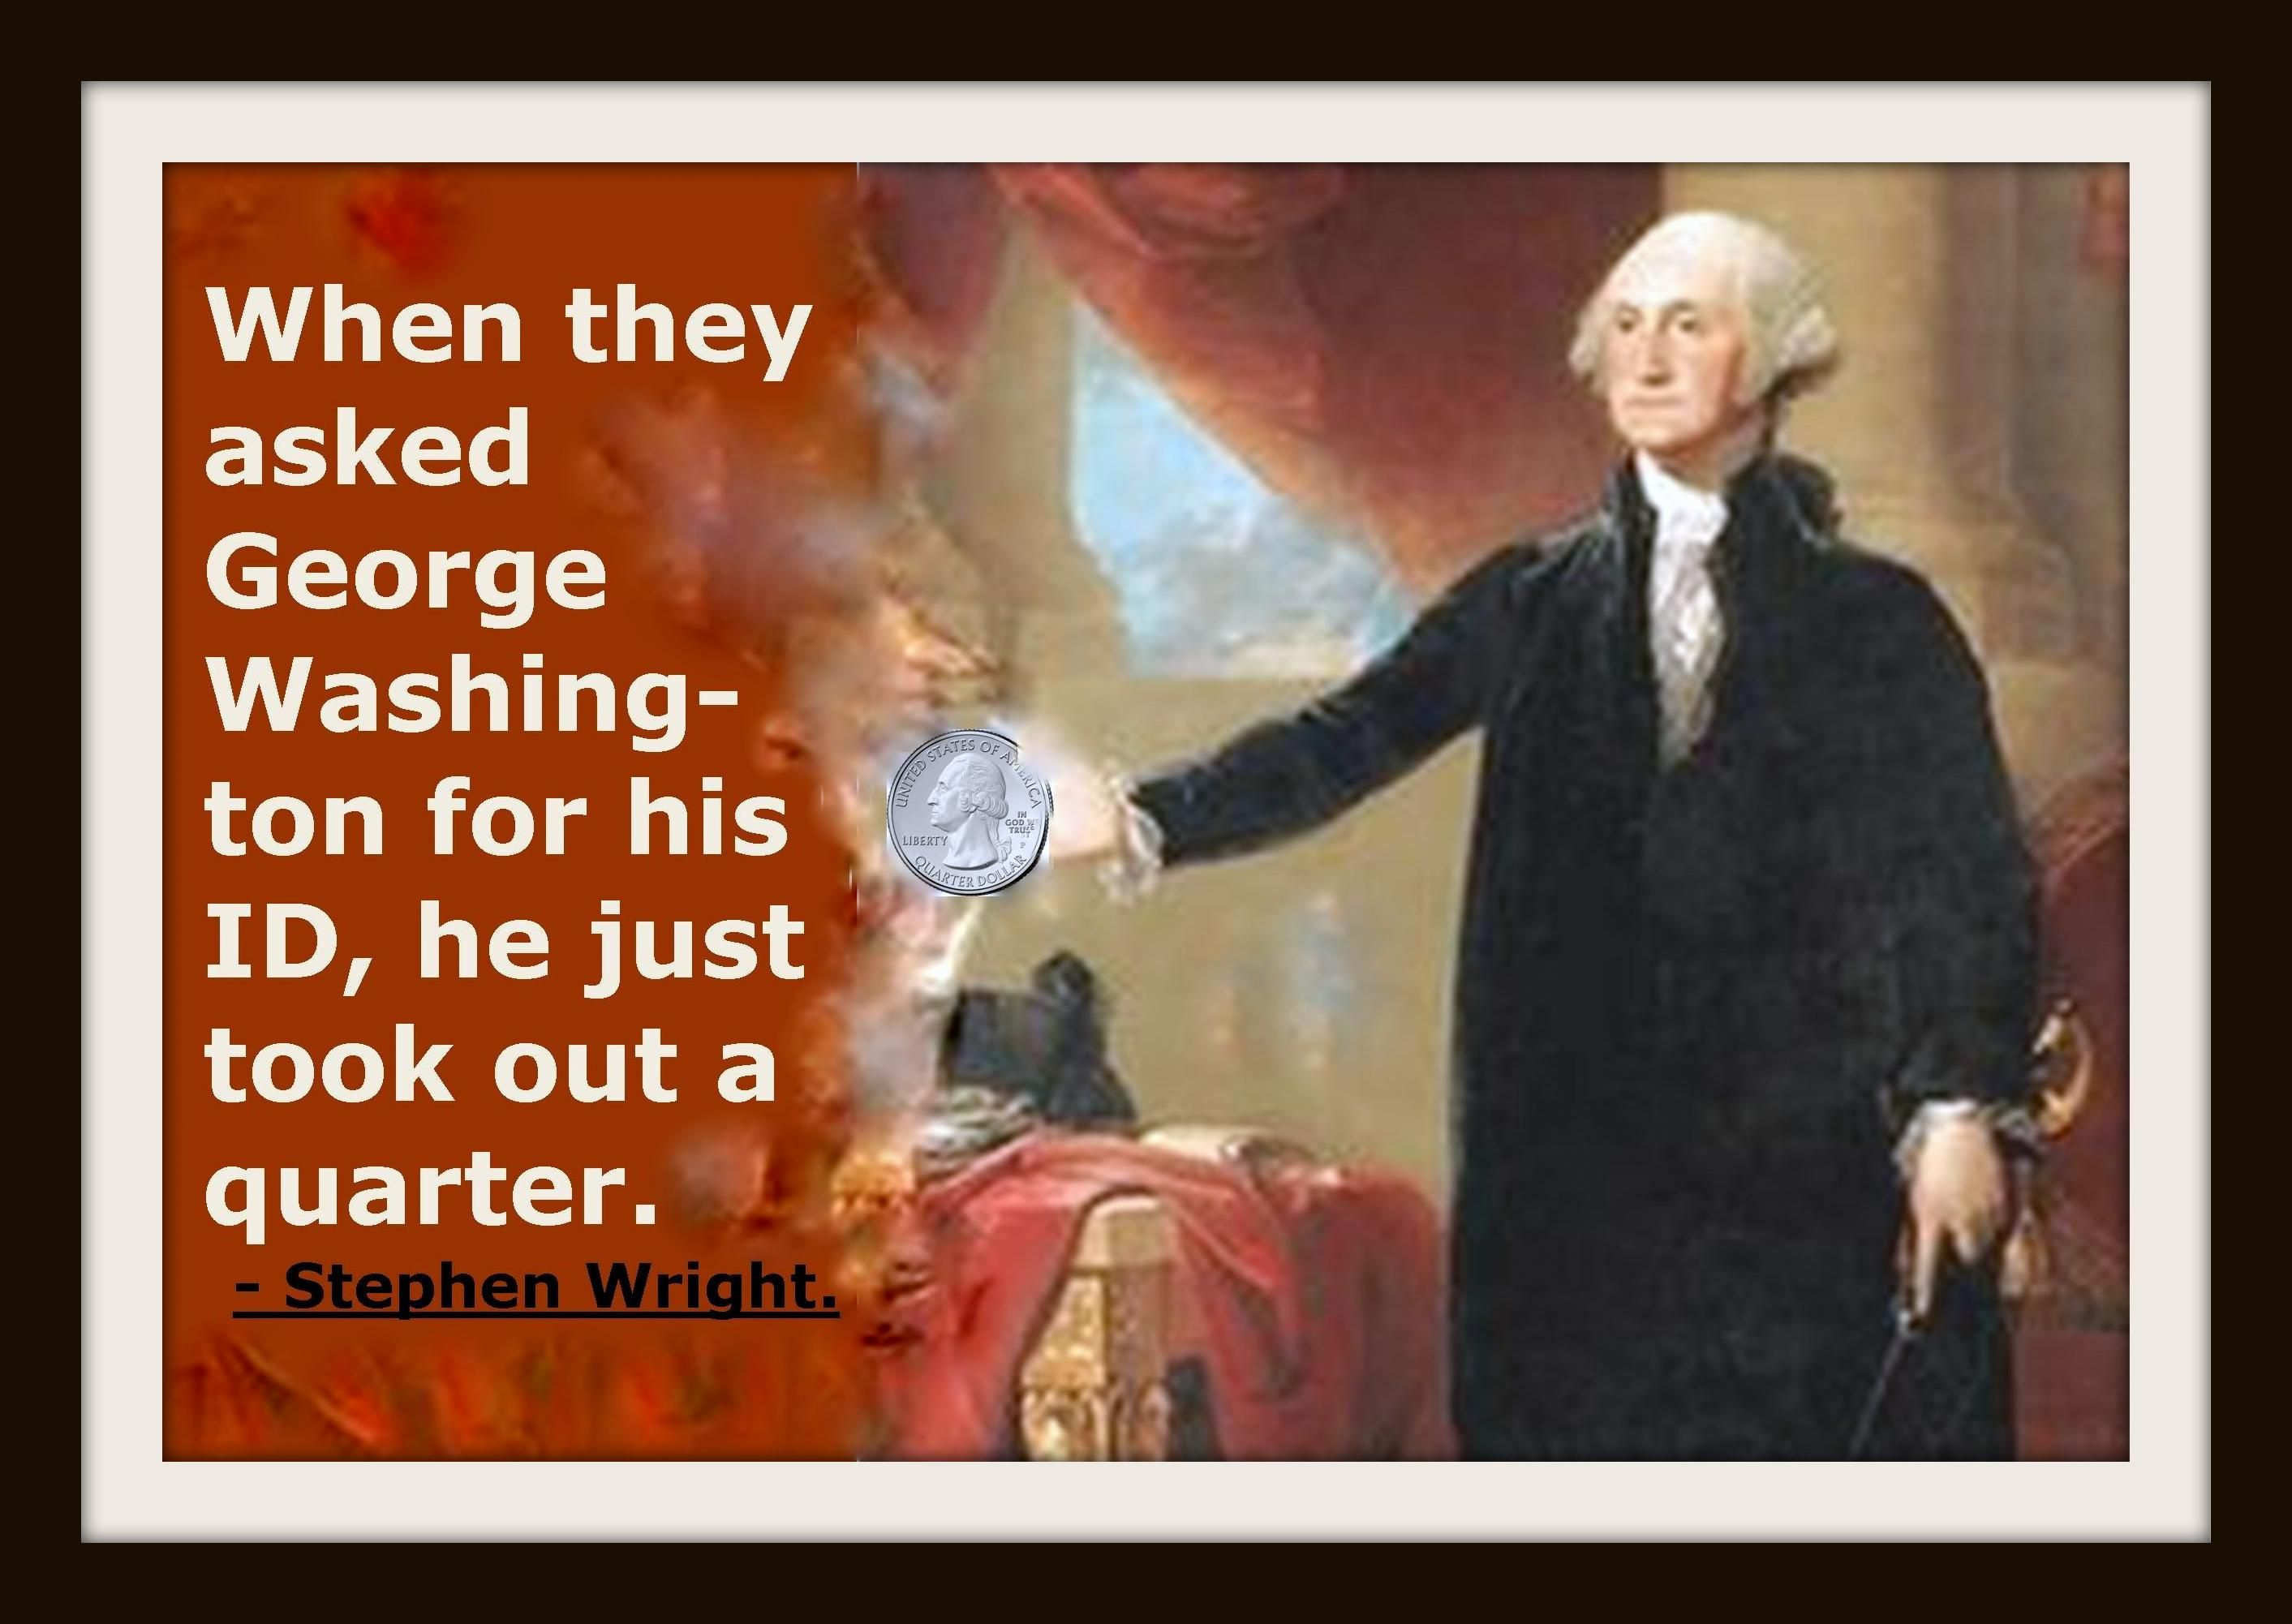 When they asked George Washington for his ID, he just took out a quarter.